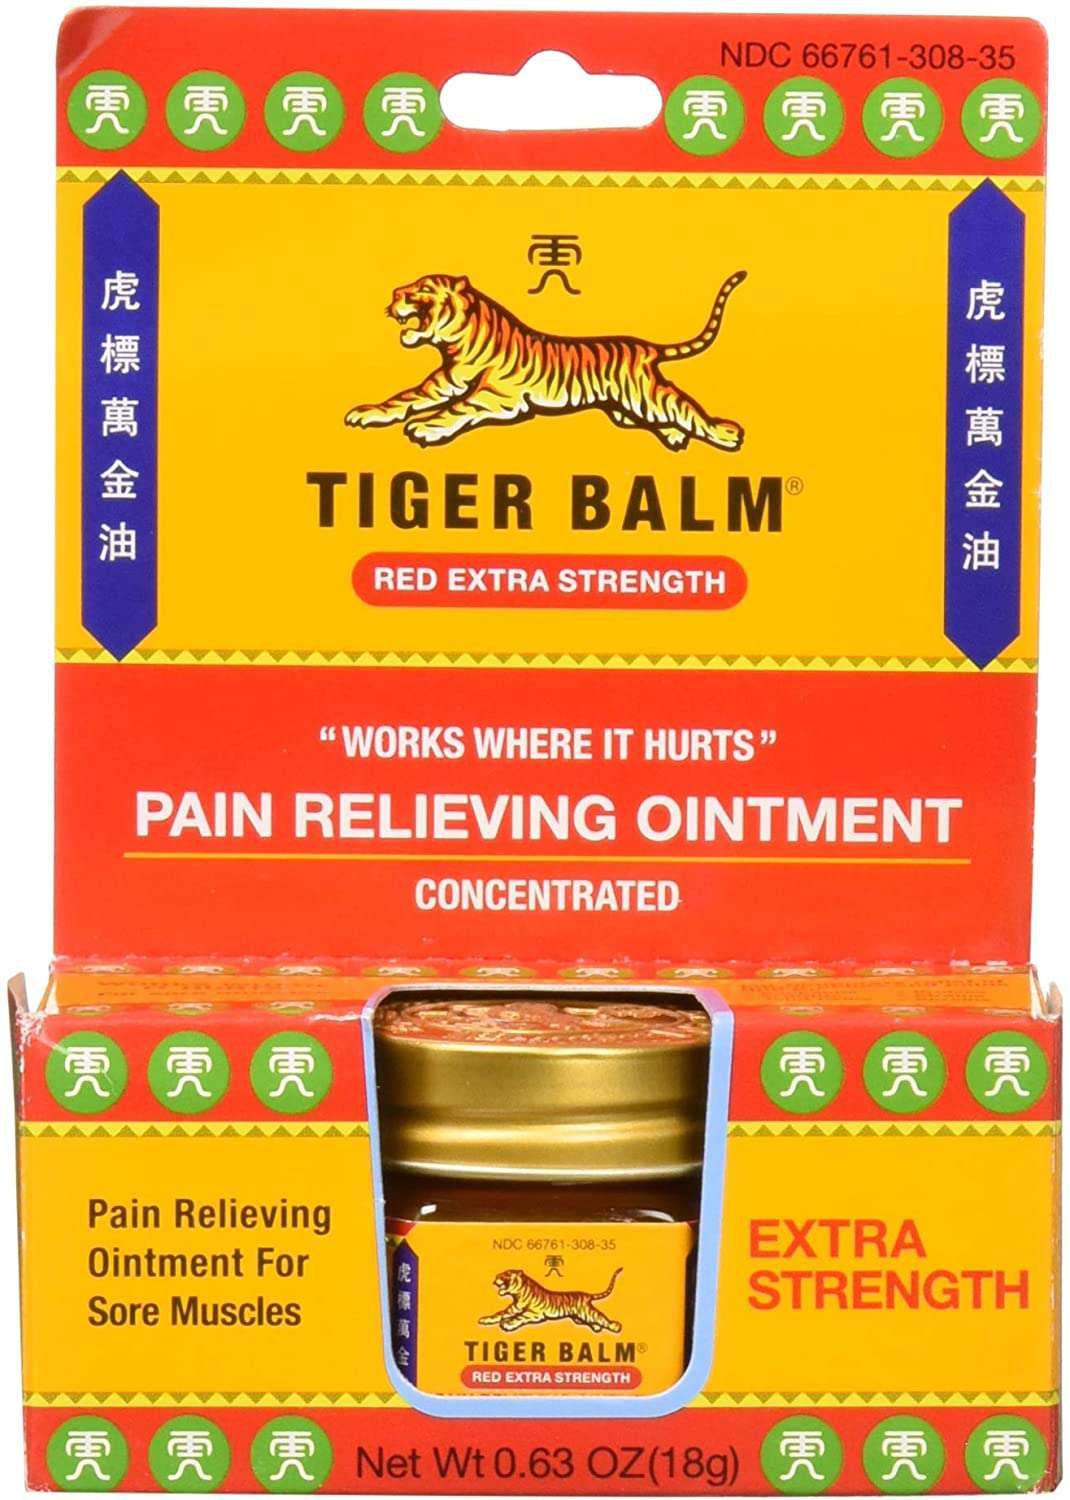 Tiger Balm Pain Relieving Red Extra Strength